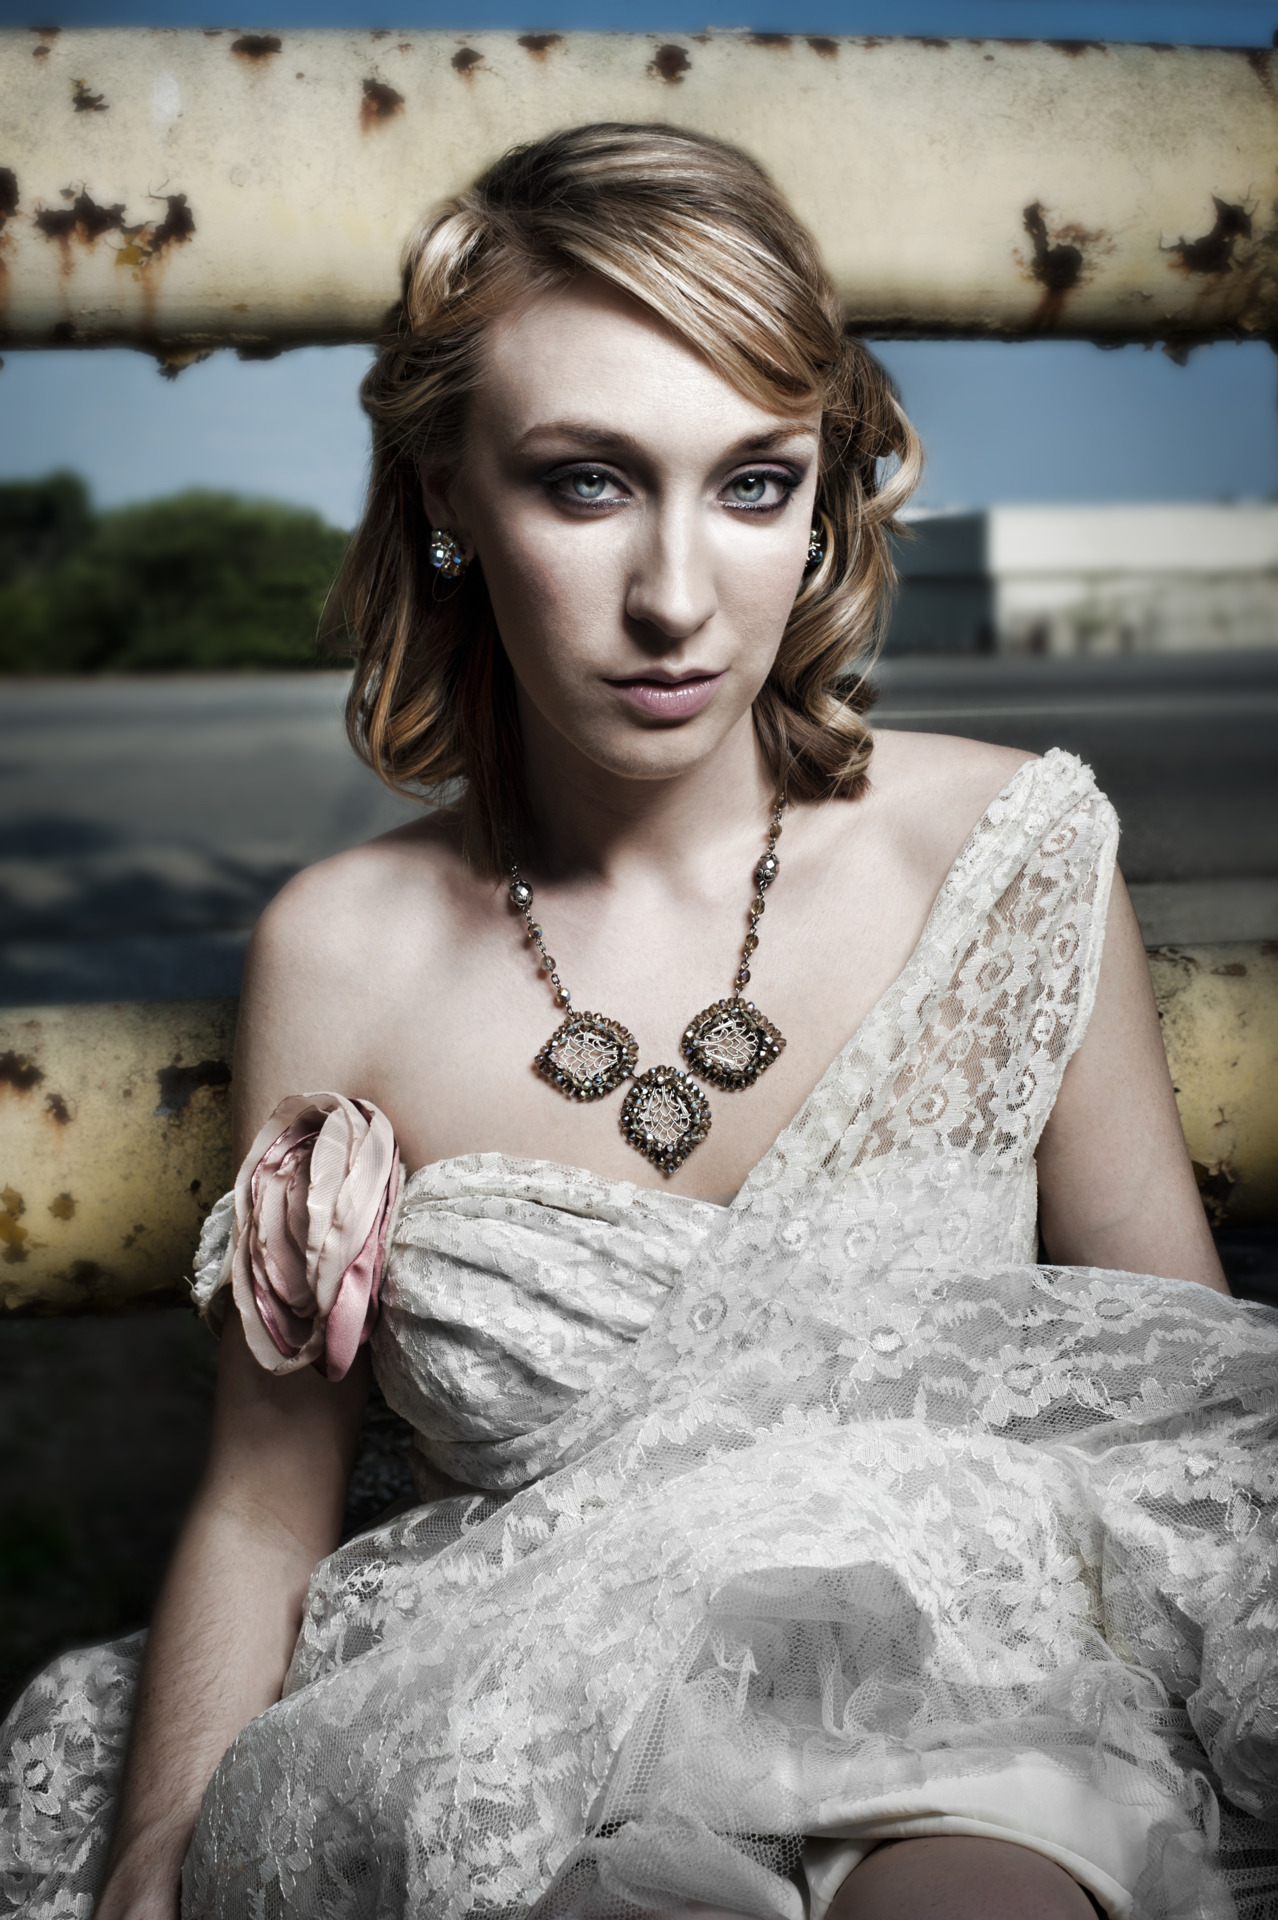 Another photo I took from the jewelry catalogue shoot.